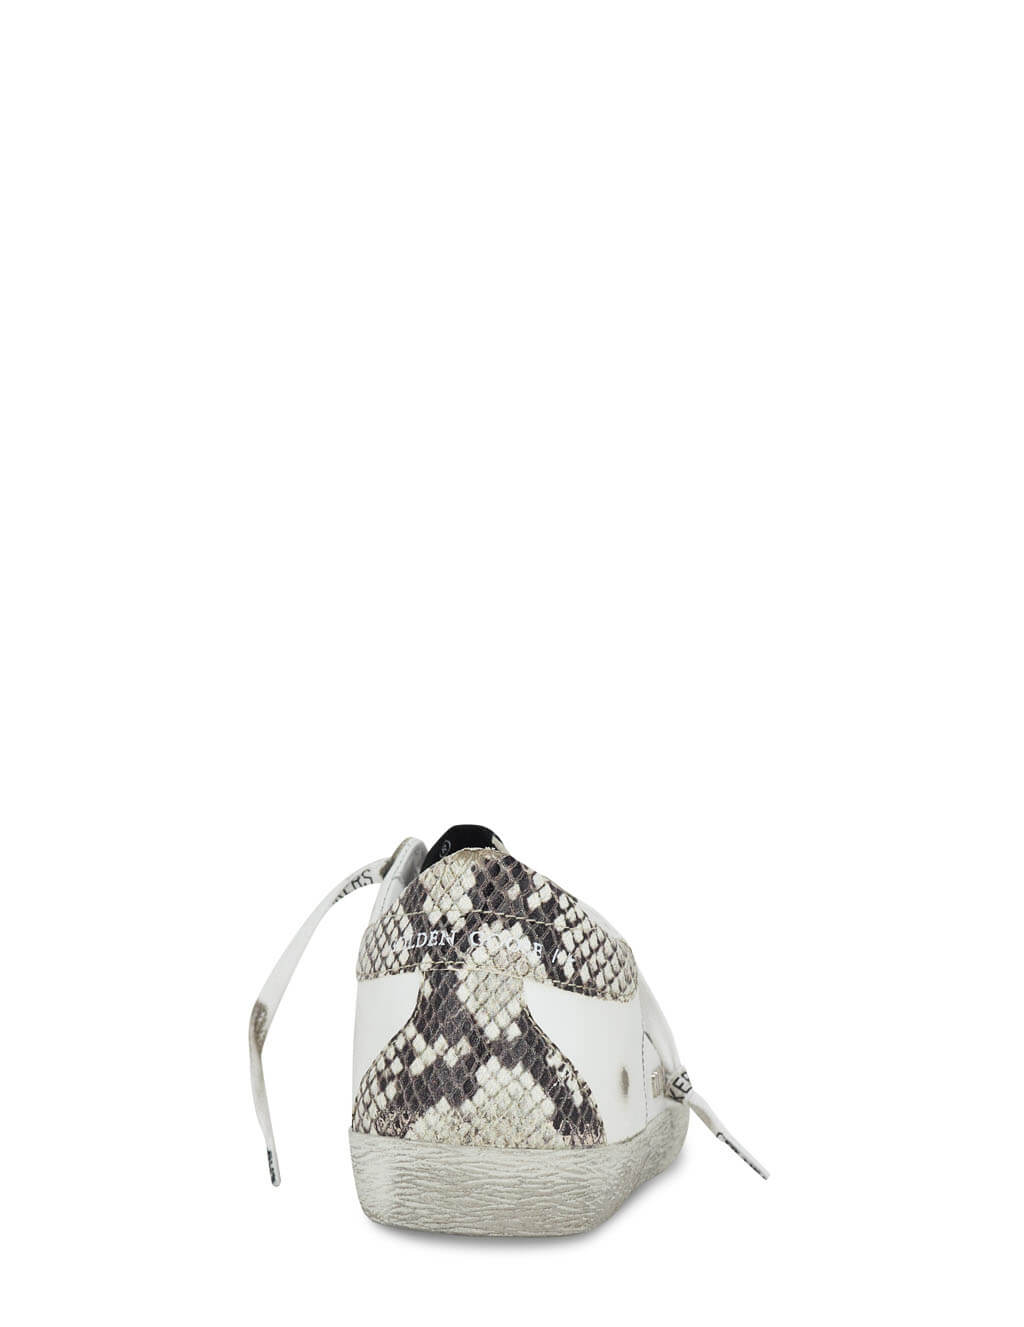 Women's Golden Goose Super-Star Sneakers in White/Silver/Snake - GWF00102F00076110402